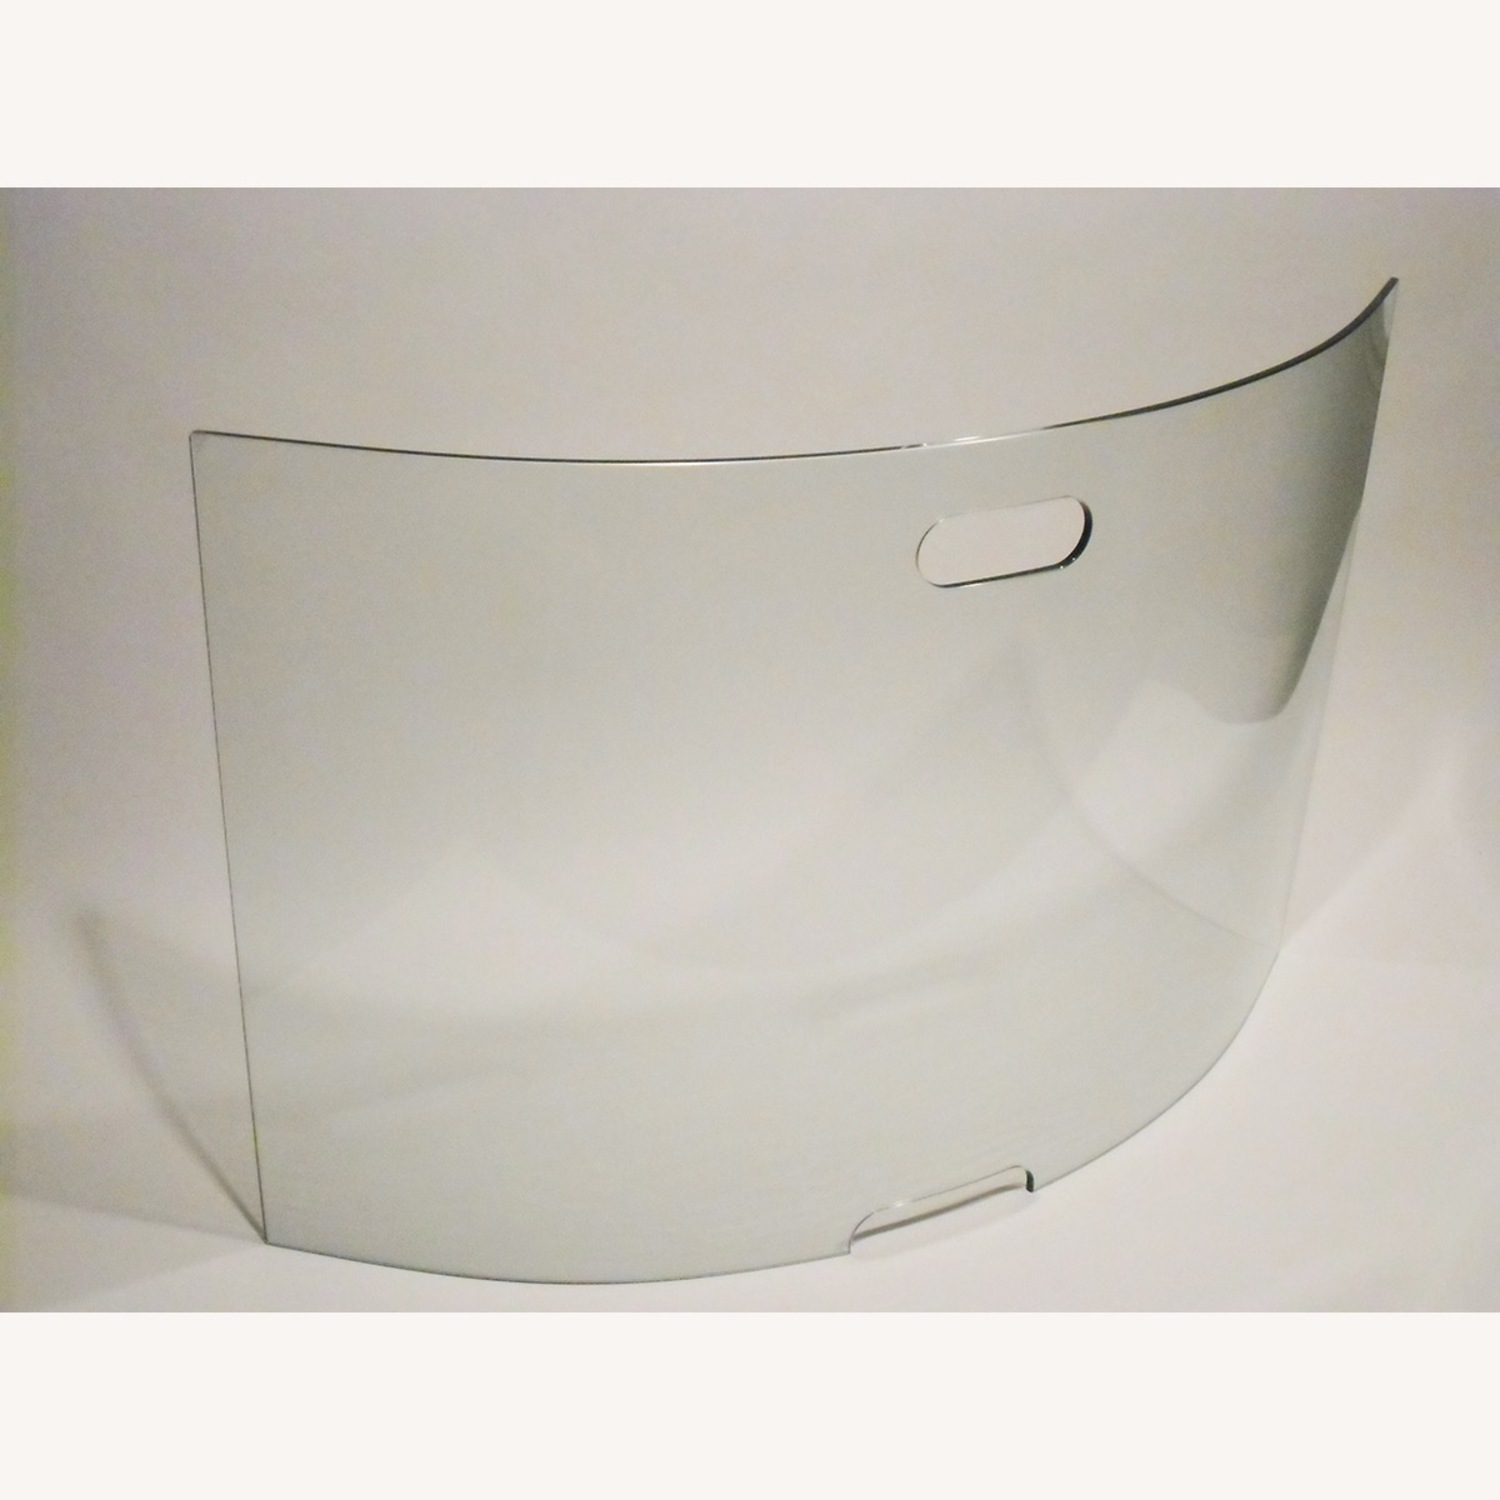 Curved Panel Glass Fireplace Screen